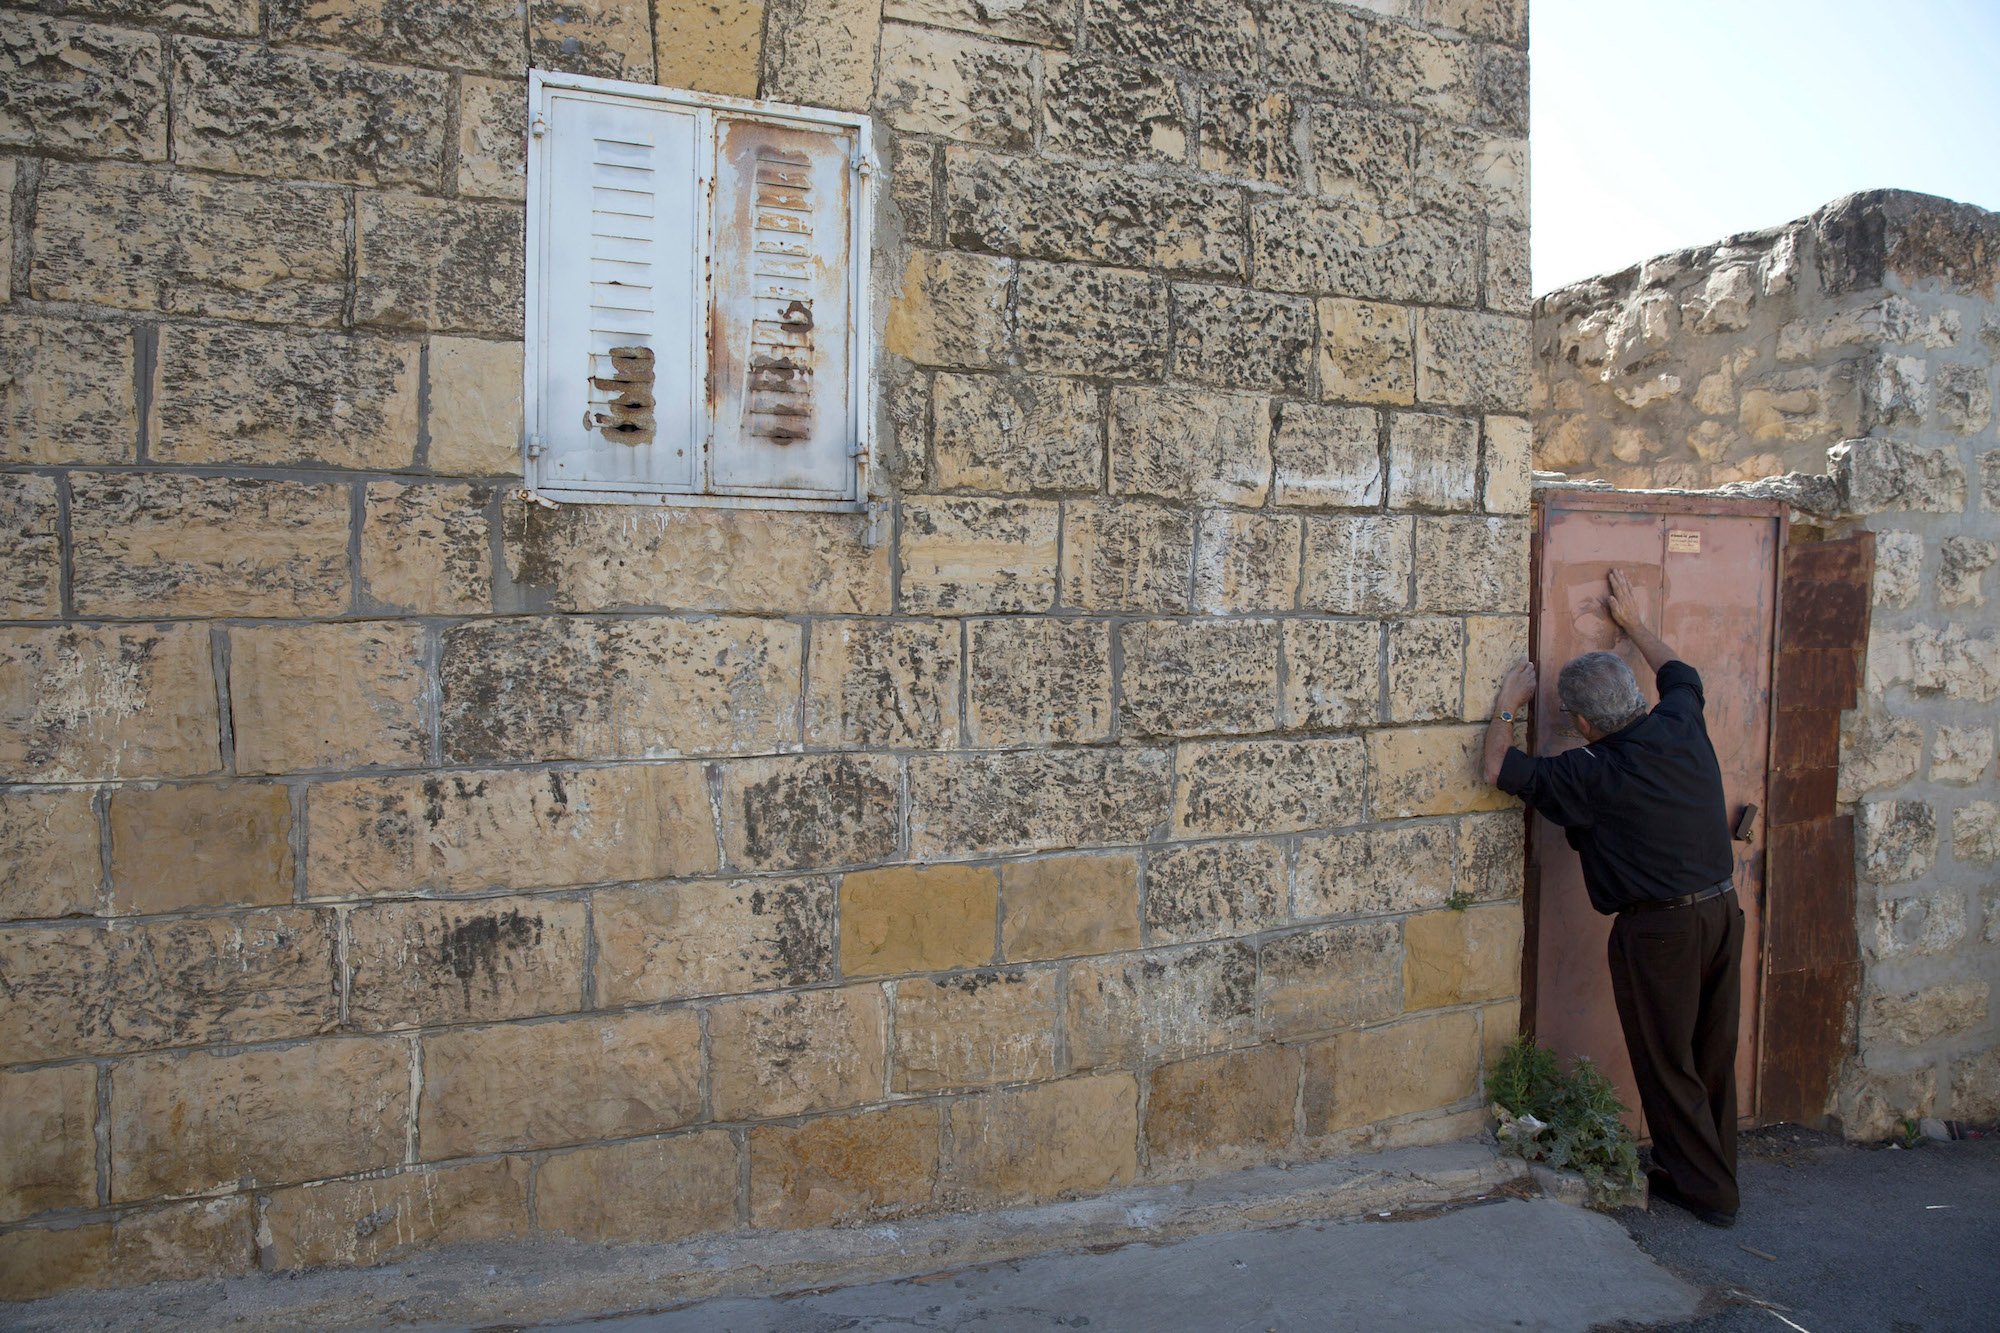 Anton Qulibyoba Yoakim, 63, bangs on the metal door of the home he grew up in the West Bank village of El Qubeibeh, on Monday, April 17, 2017. He now lives in the Old City of Jerusalem with his family. (Photo by Heidi Levine/GroundTruth)